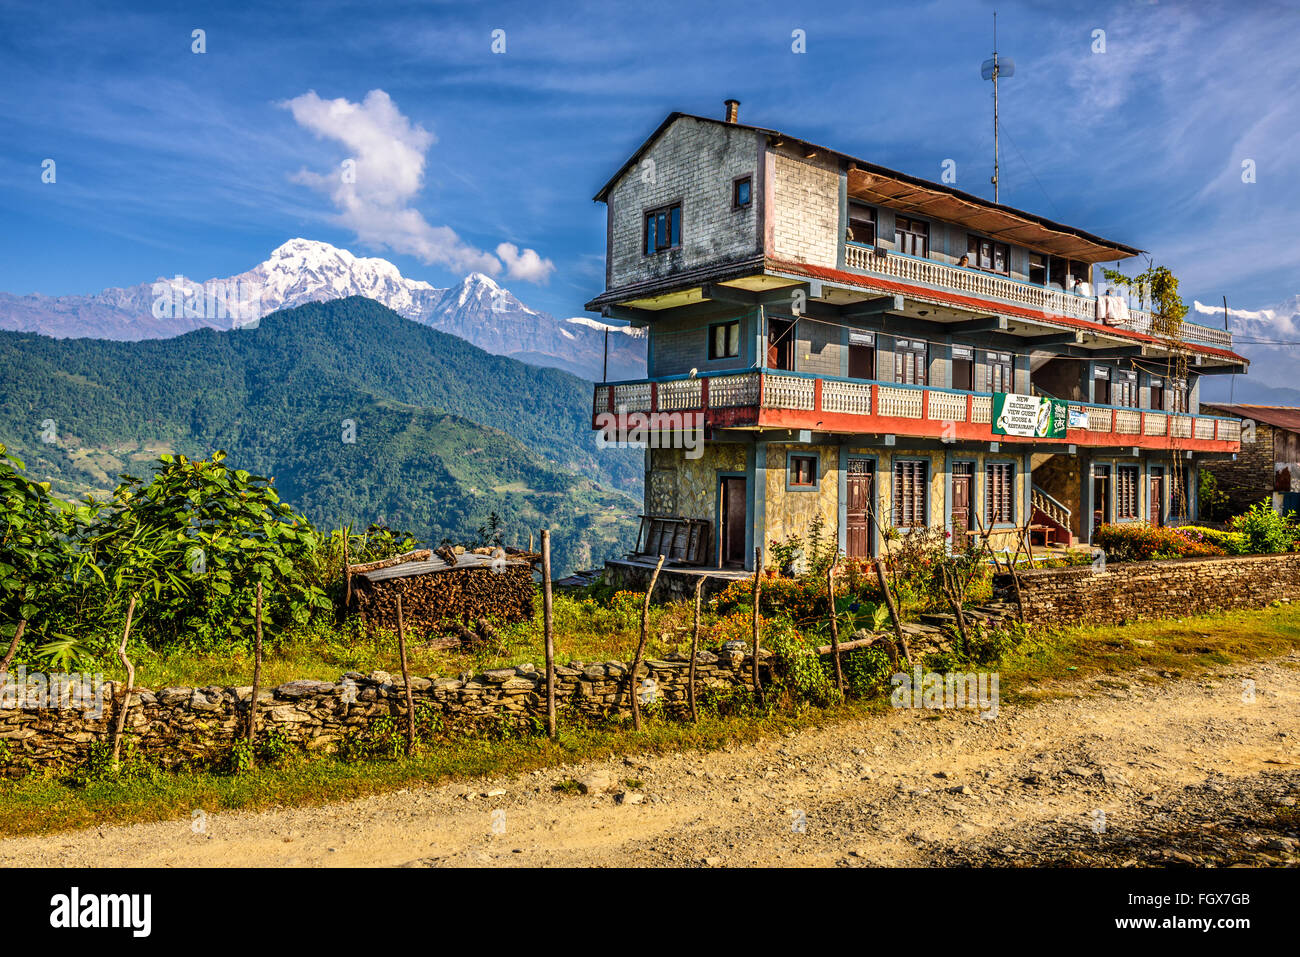 Guest House with a restaurant situated in the Himalayas mountains near Pokhara - Stock Image